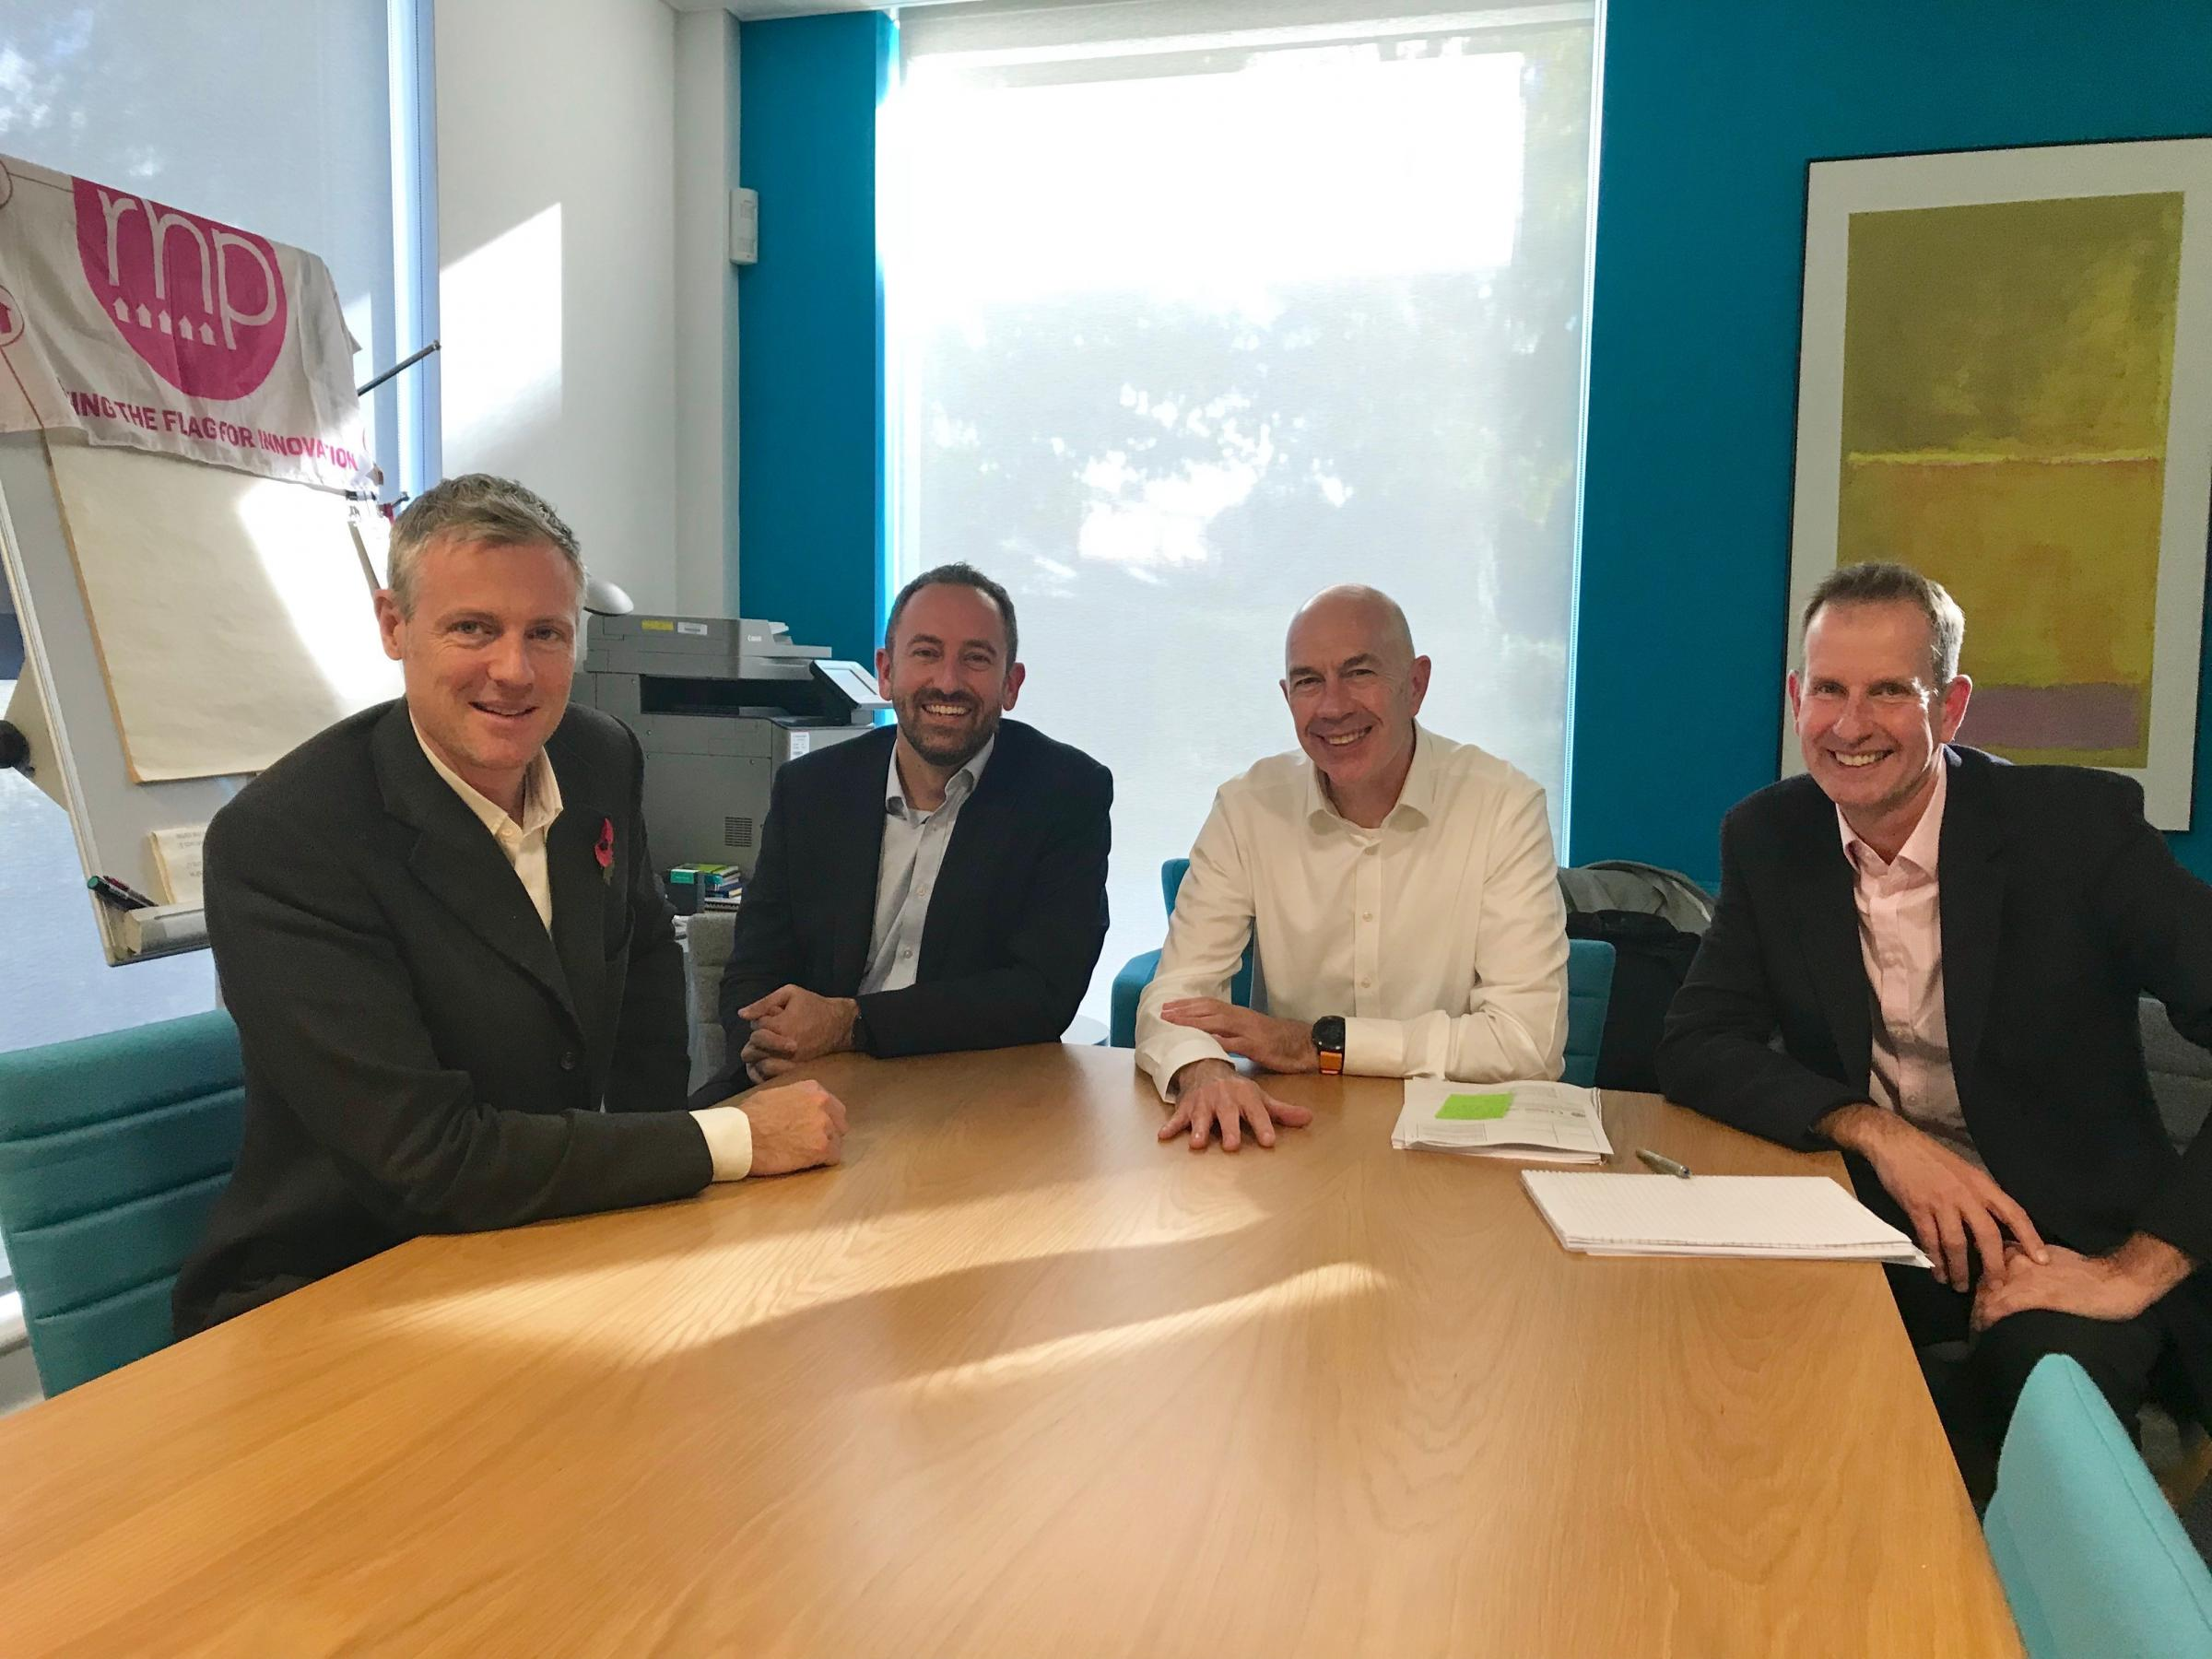 Zac Goldsmith met with representatives from Richmond Housing Partnership to raise residents concerns